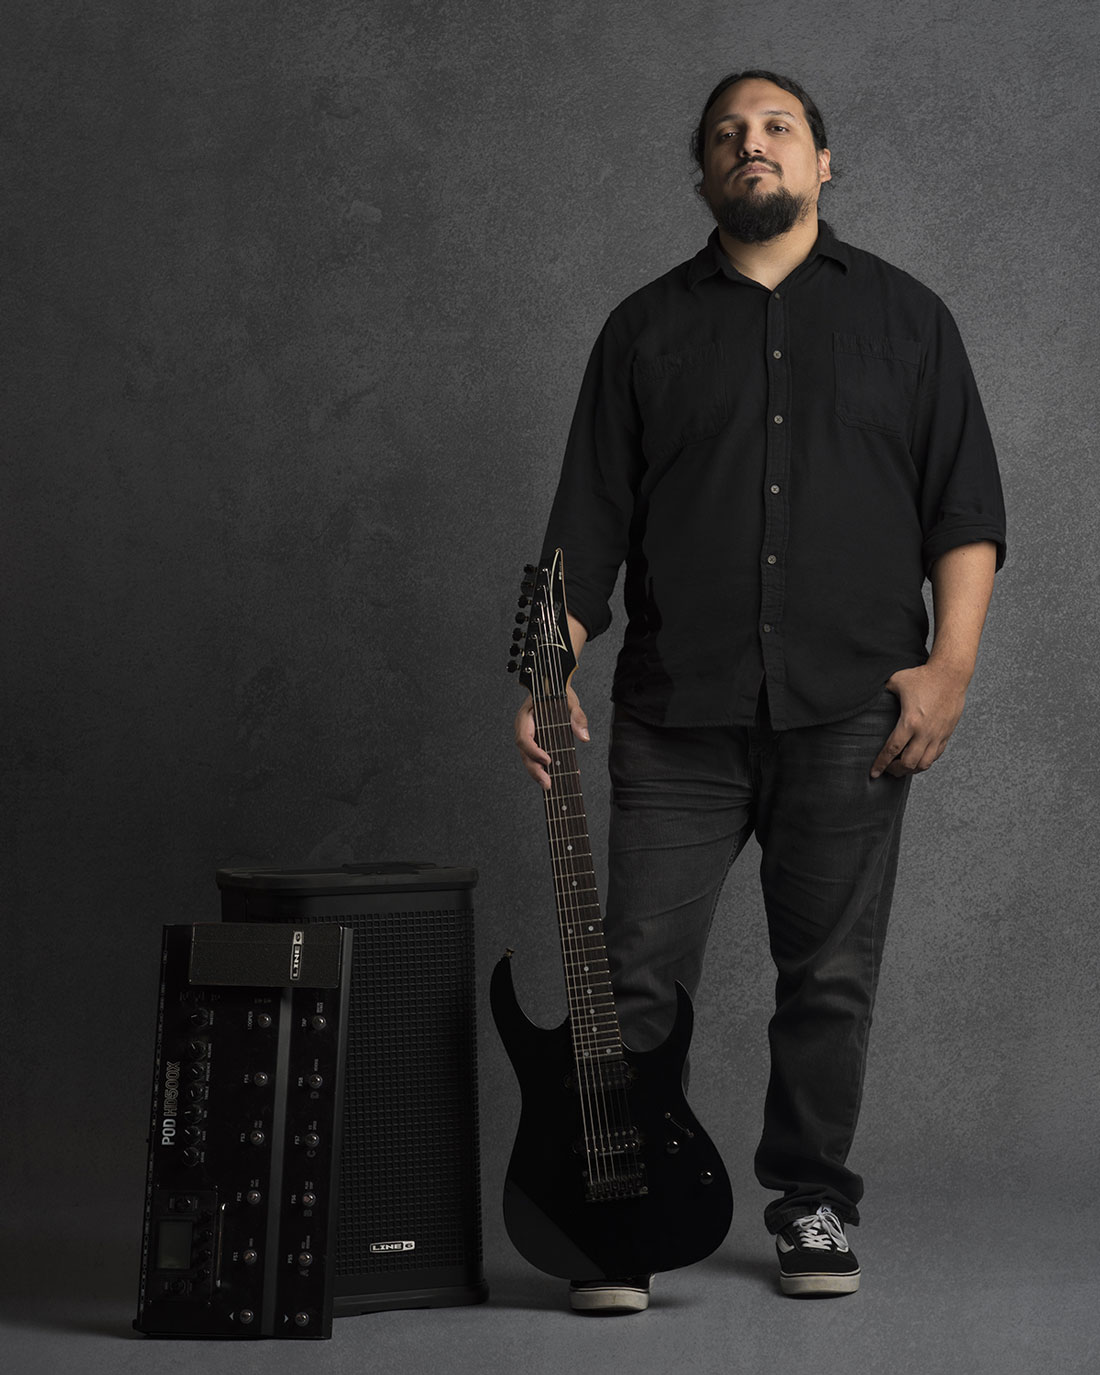 Guitarist - Ibanez Guitars, Line 6